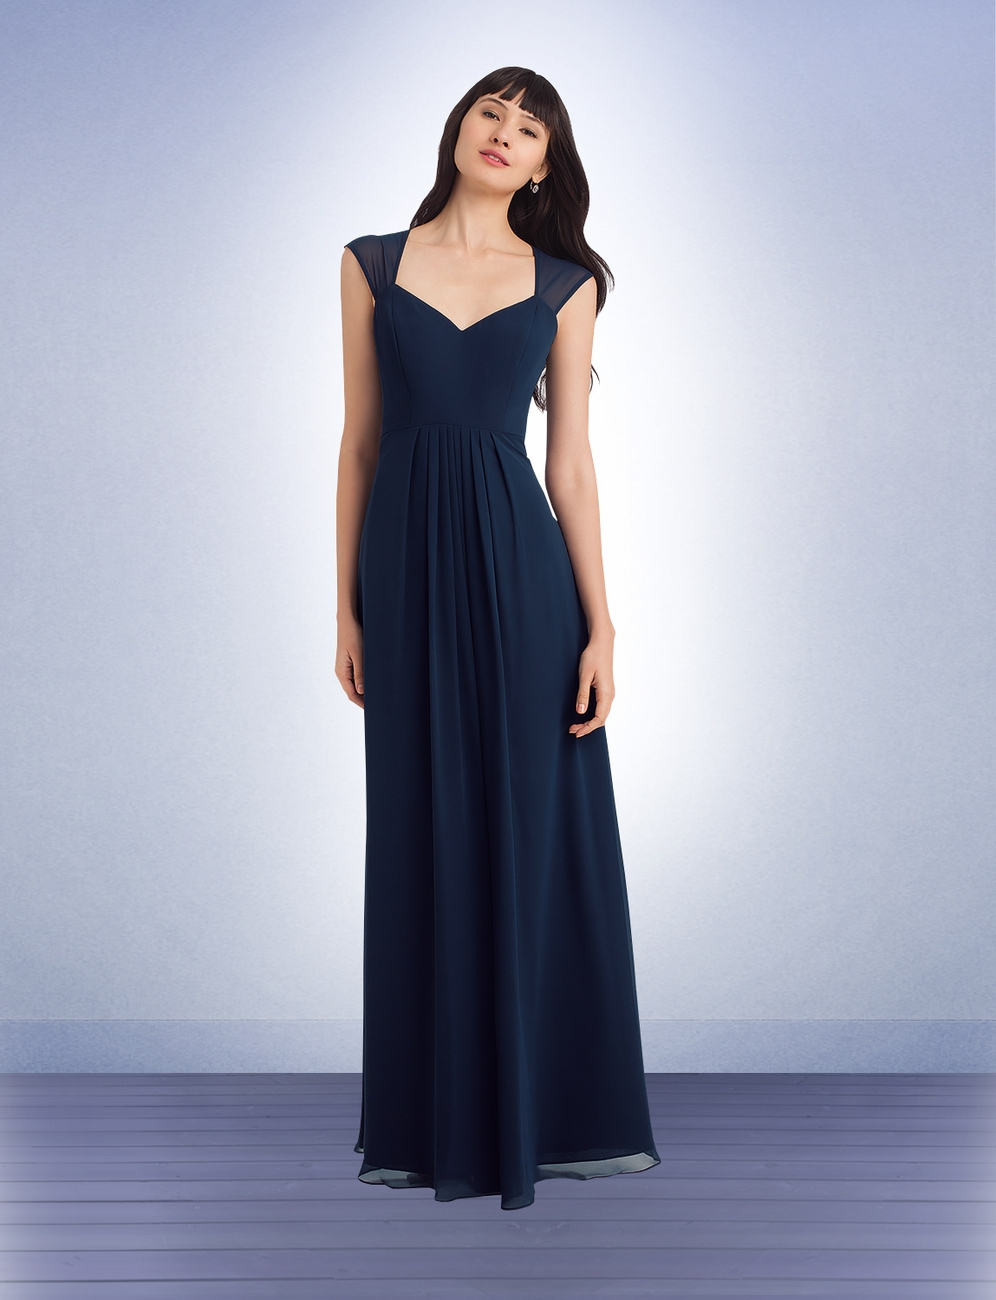 9f3b1917c93c9 BILL LEVKOFF BRIDESMAID DRESSES|BILL LEVKOFF 1124|BILL LEVKOFF ...